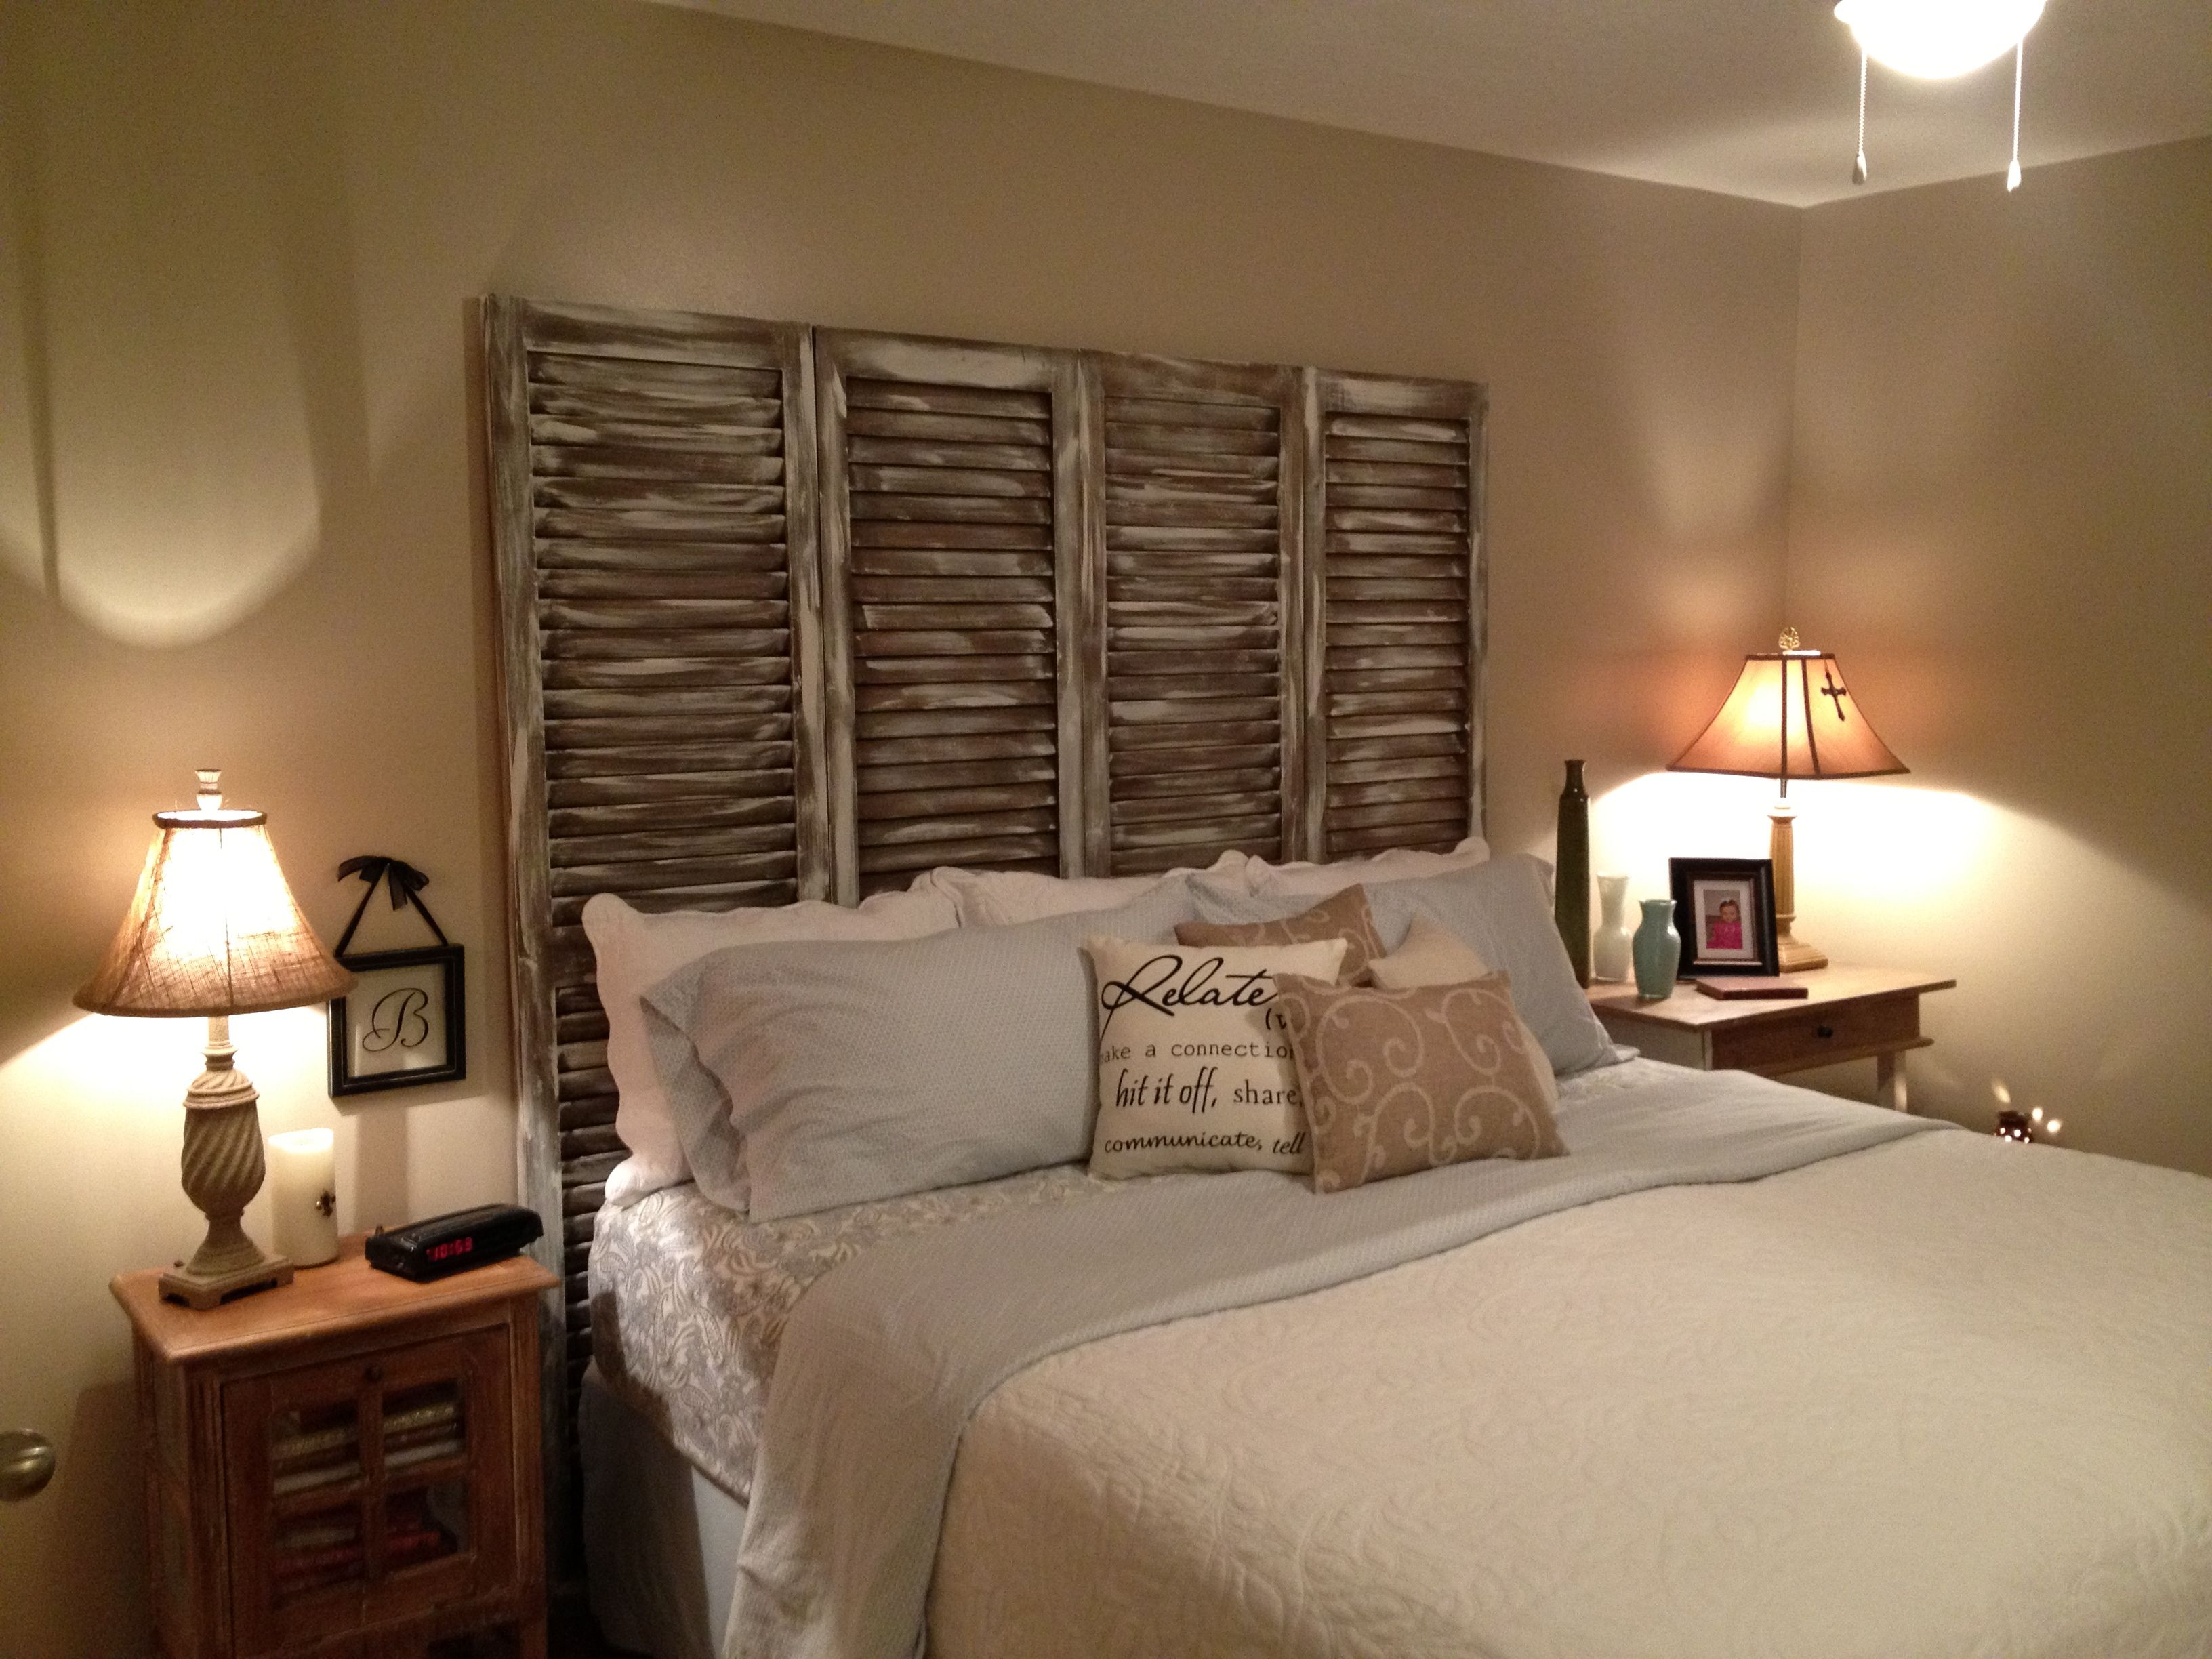 Headboard made from old shutters diy crafts that i - King size headboard ideas ...